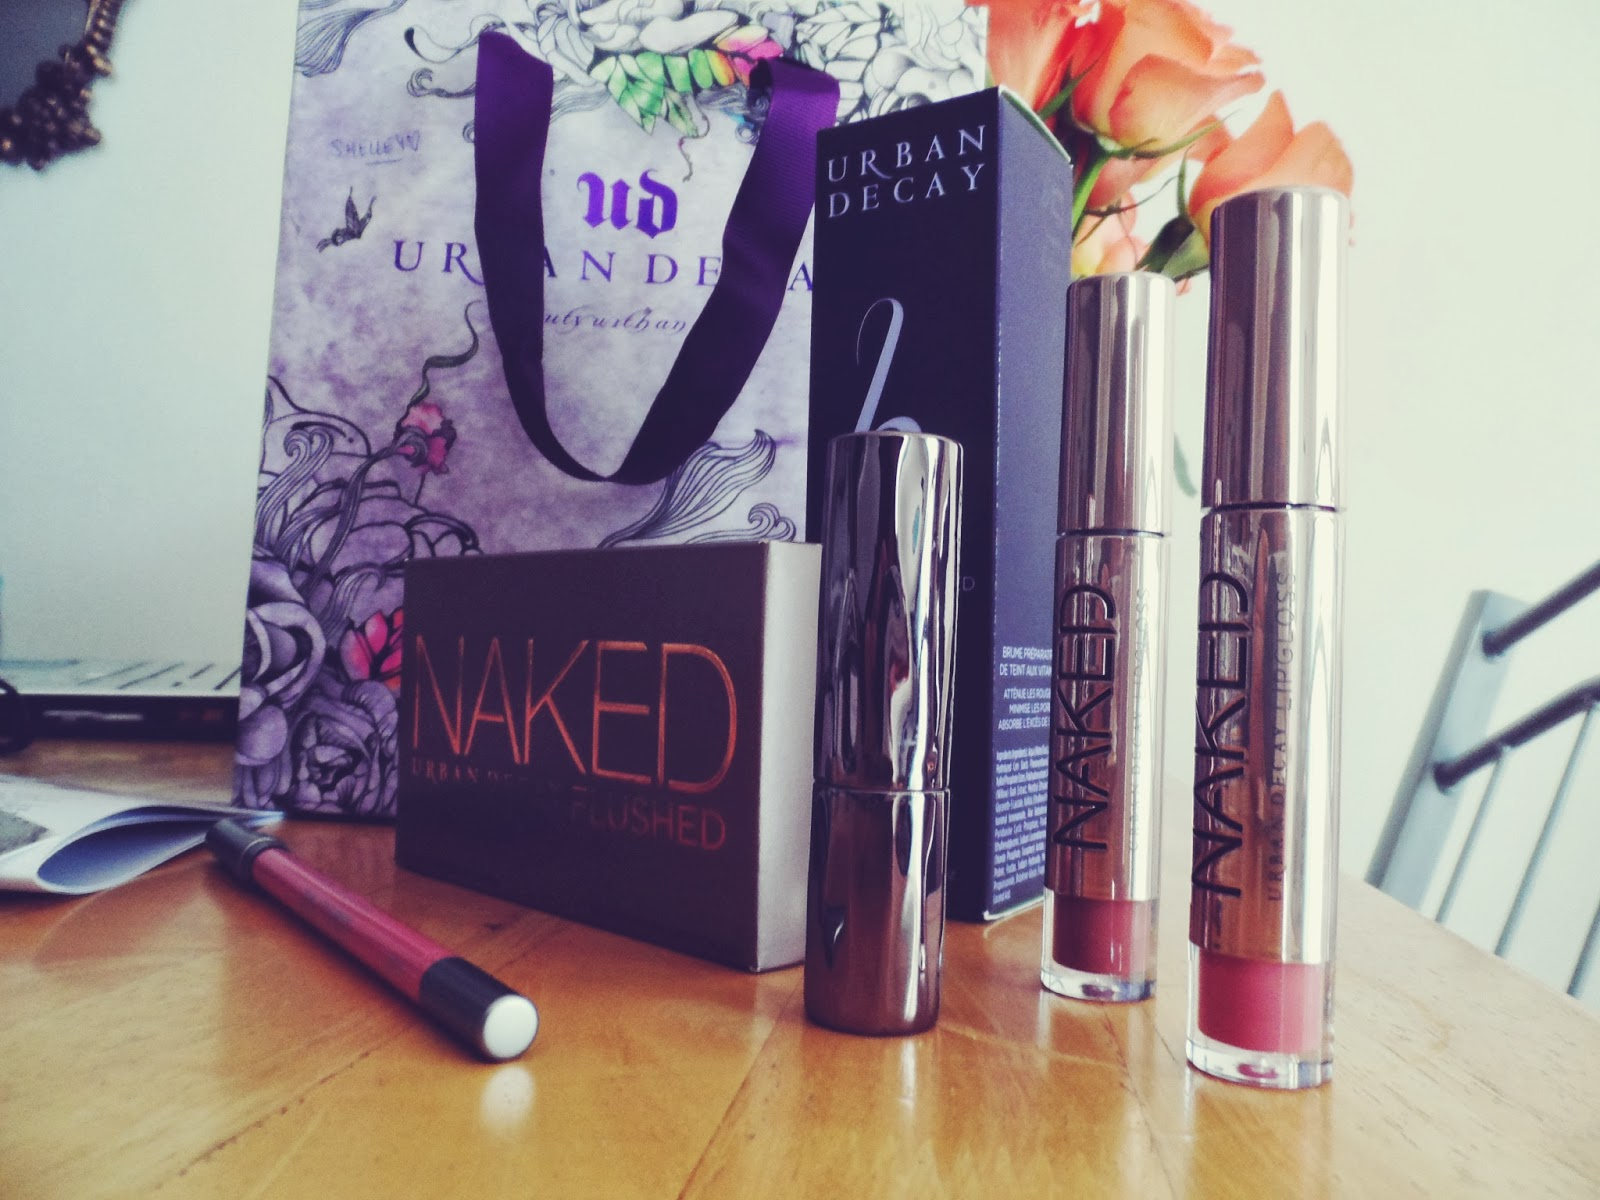 urban decay blogger gift bags, naked flushed, lipstick, b6